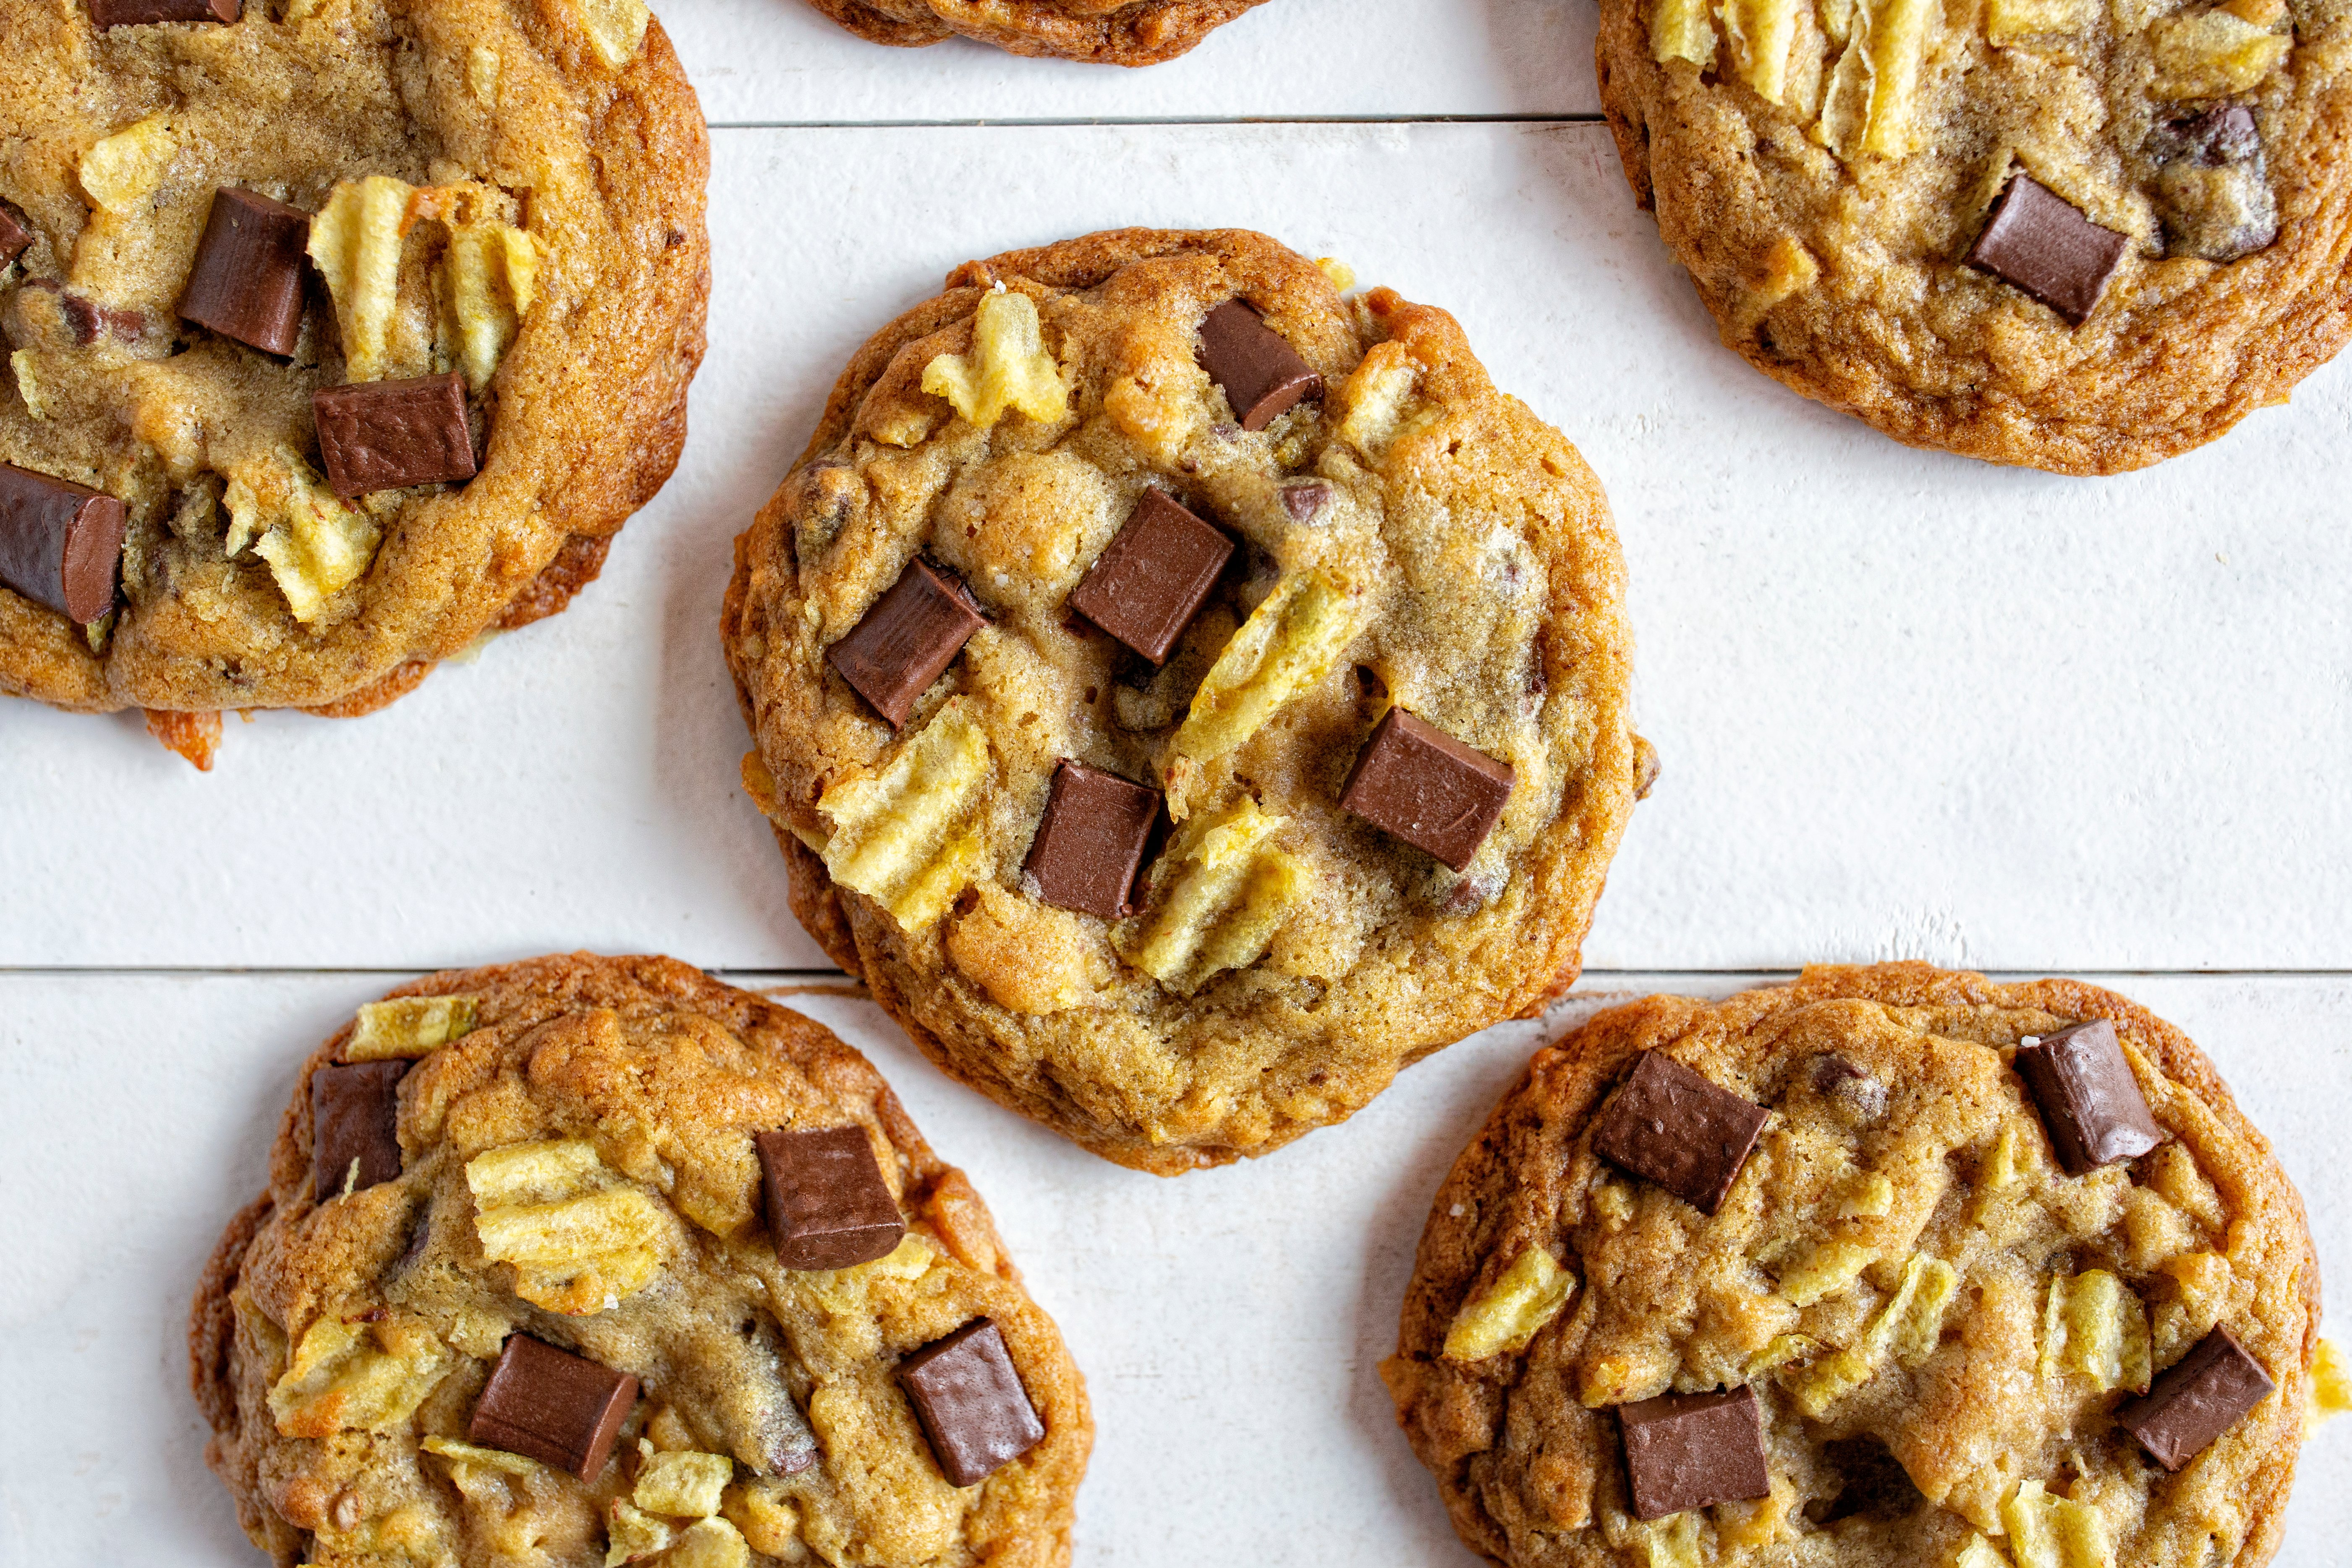 Potato Chip Chocolate Chip Cookie Recipe